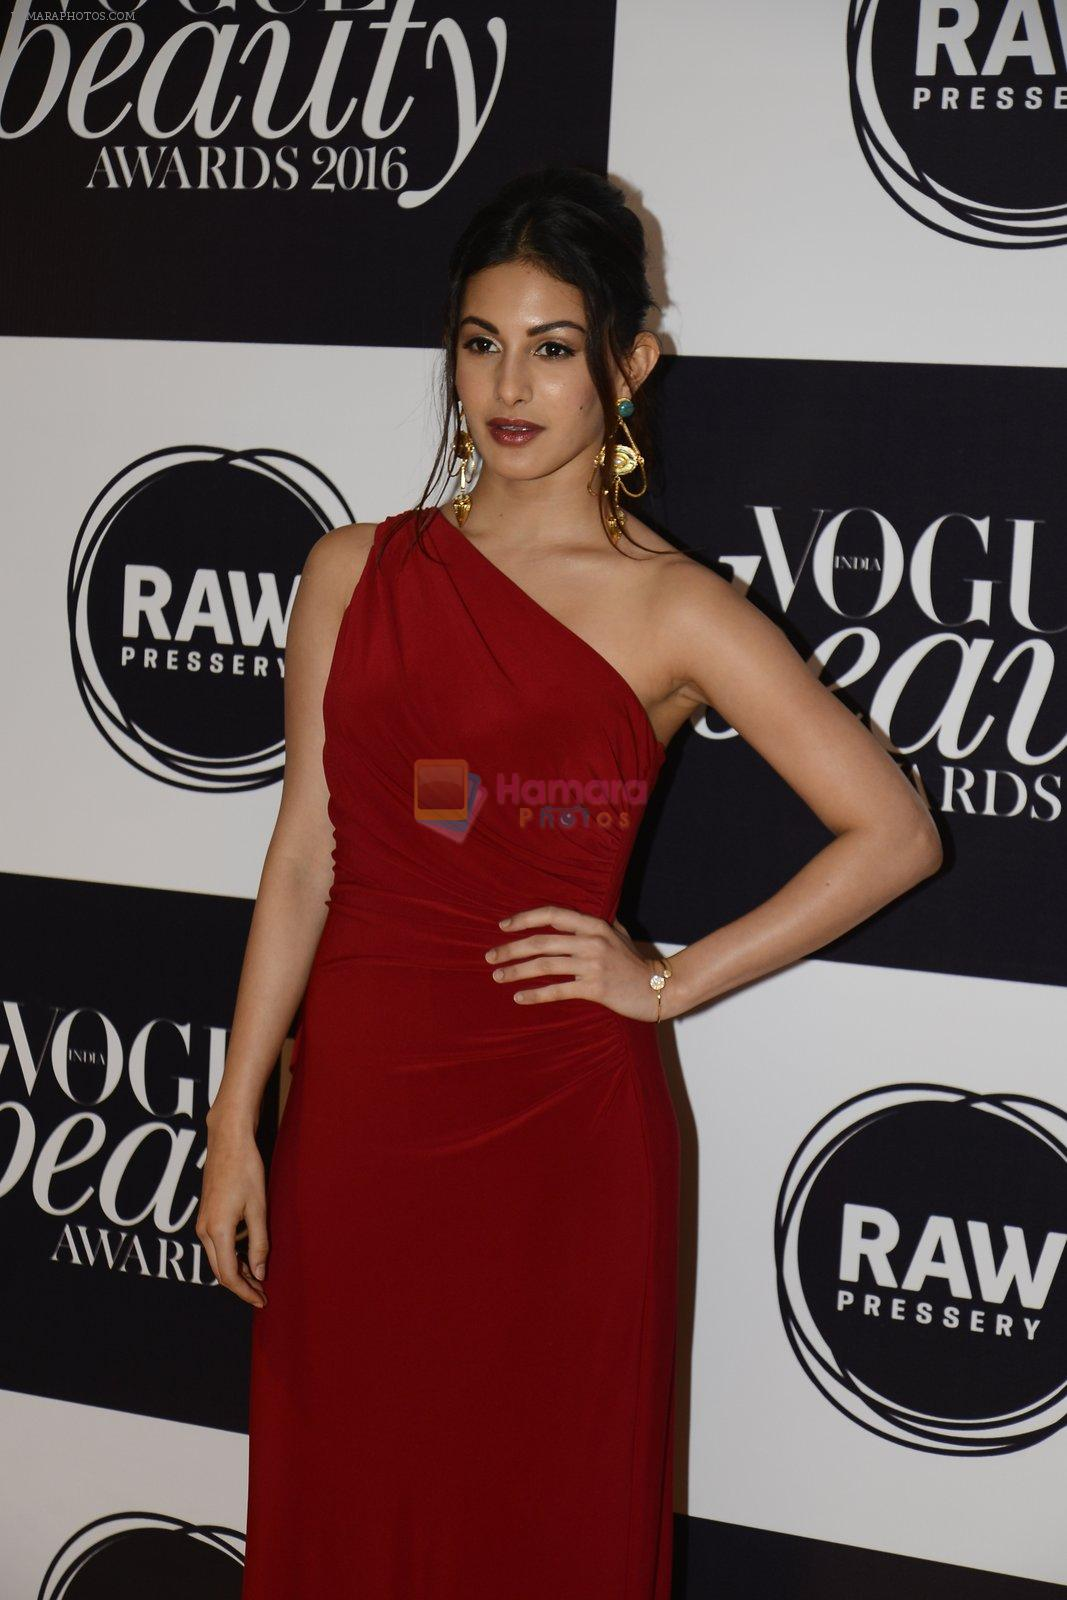 Amyra Dastur at Vogue Beauty Awards 2016 on 27th July 2016